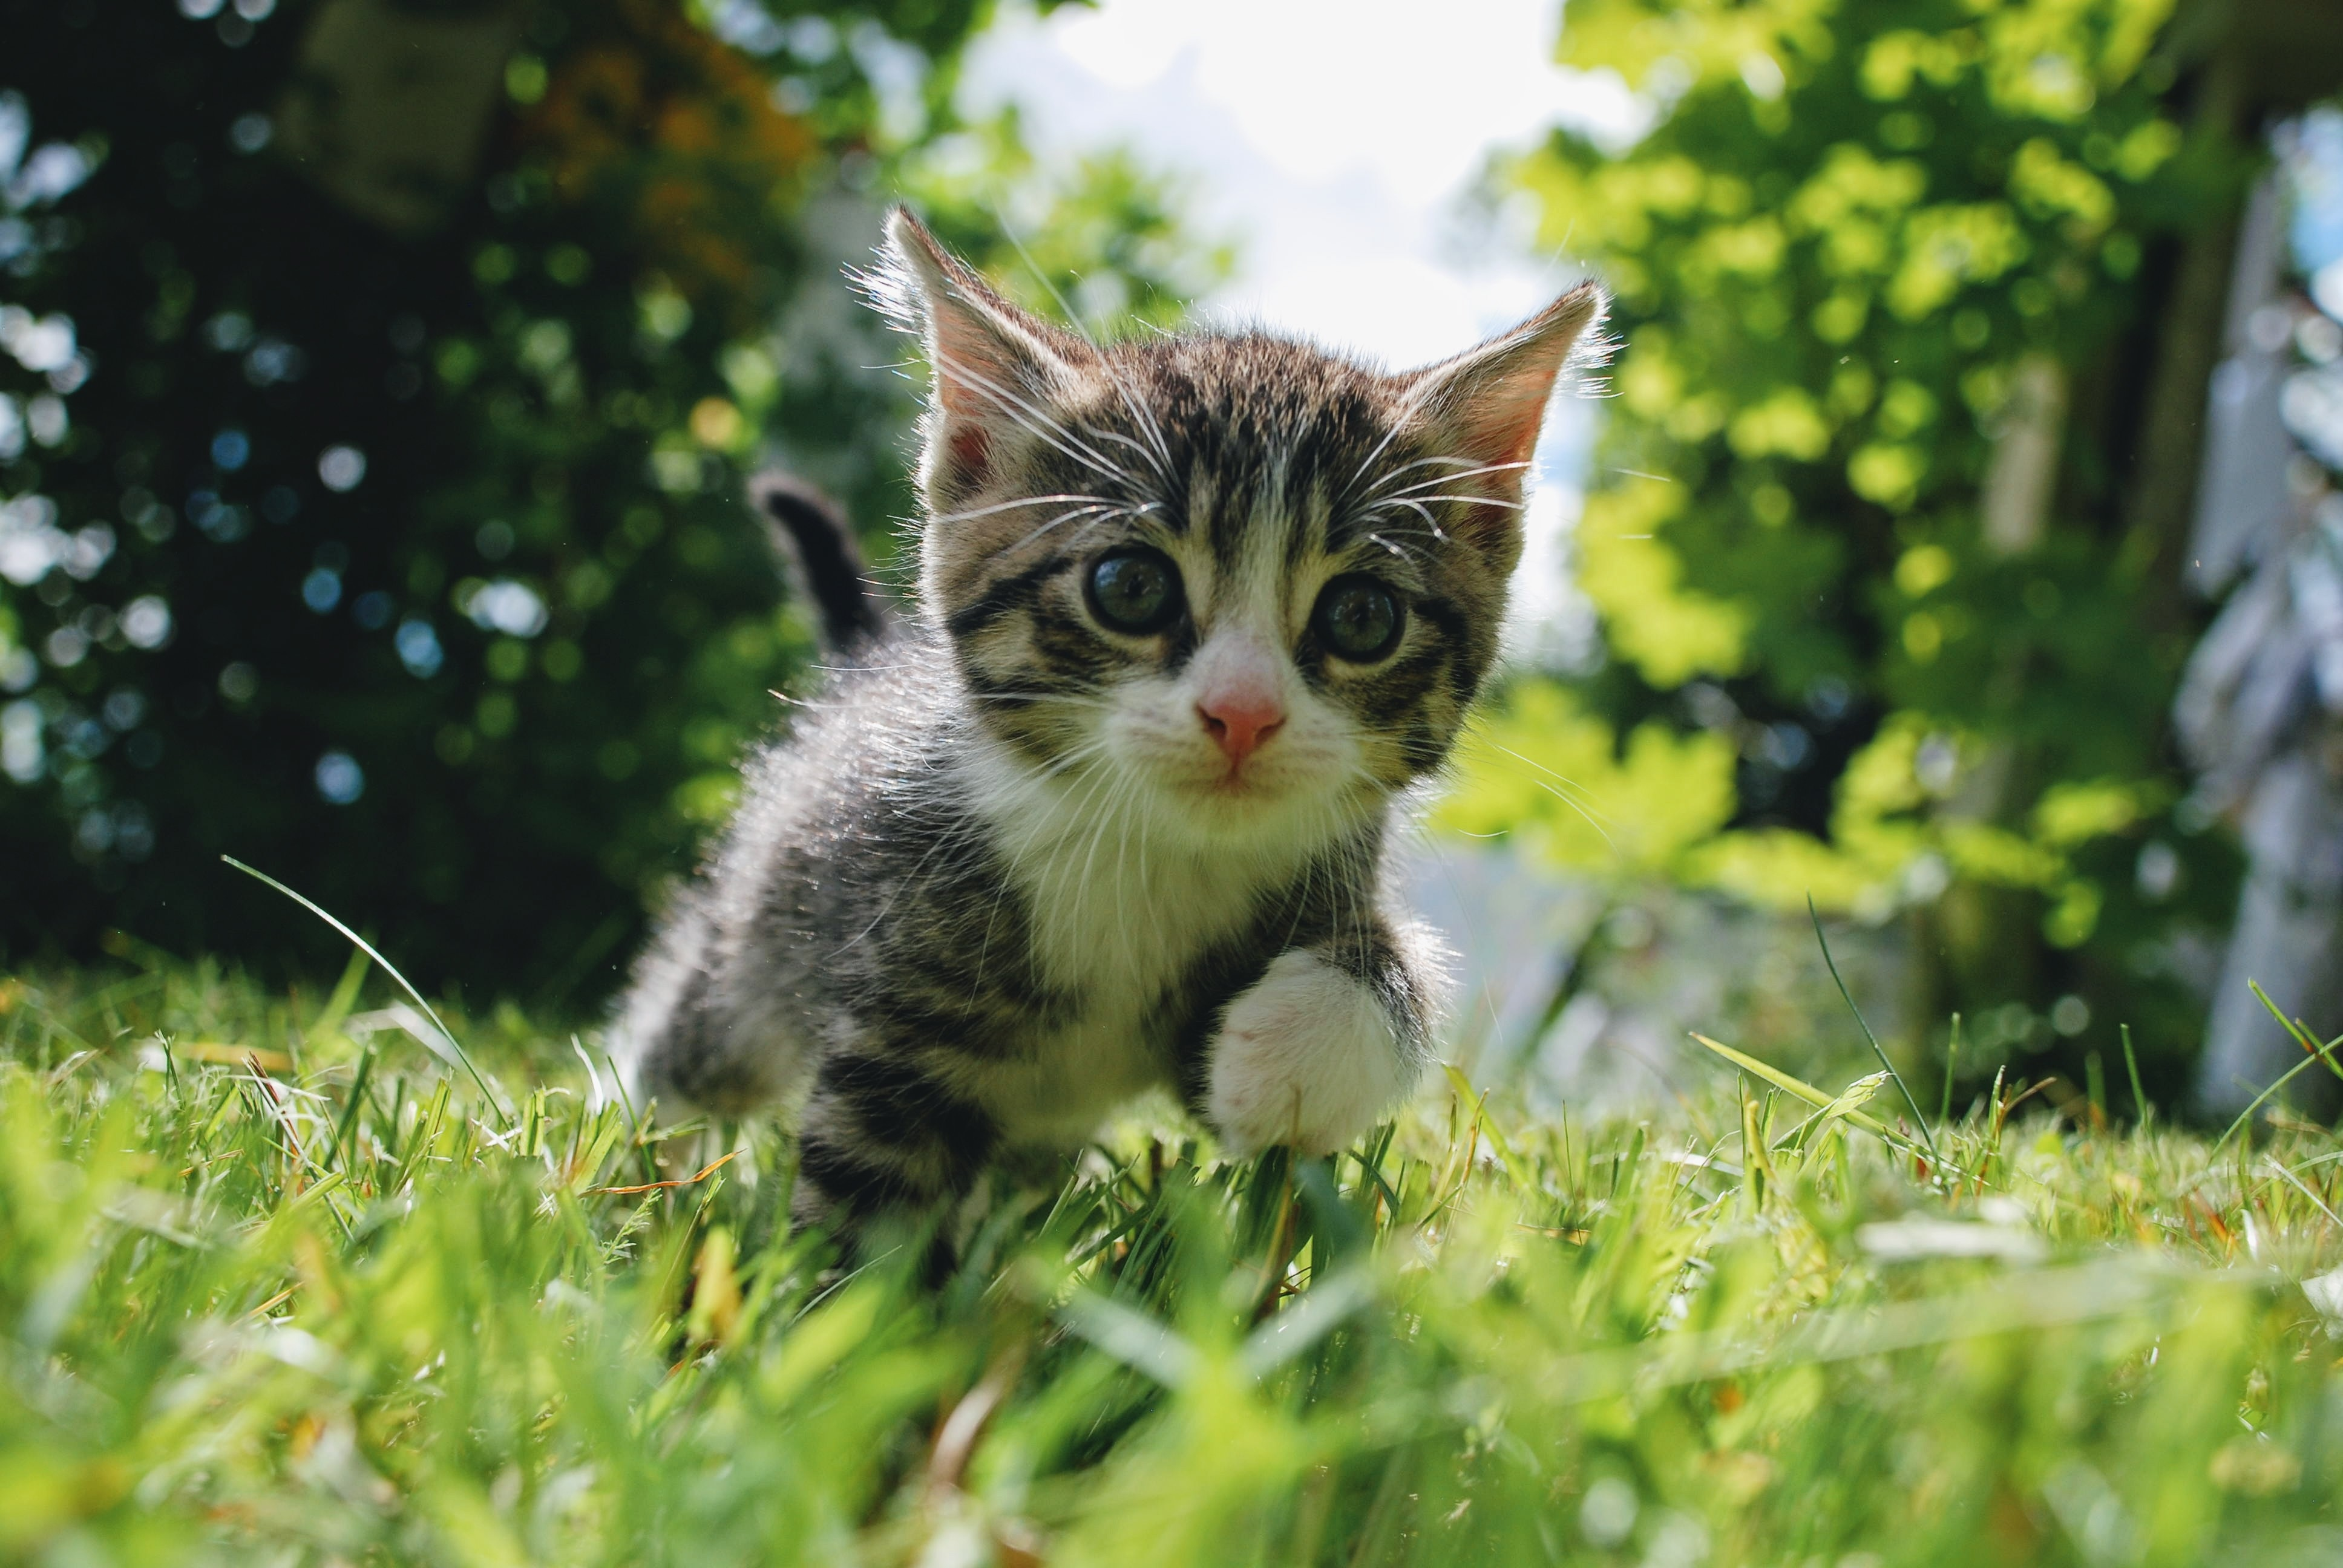 Kitten exploring outside and walking through grass.